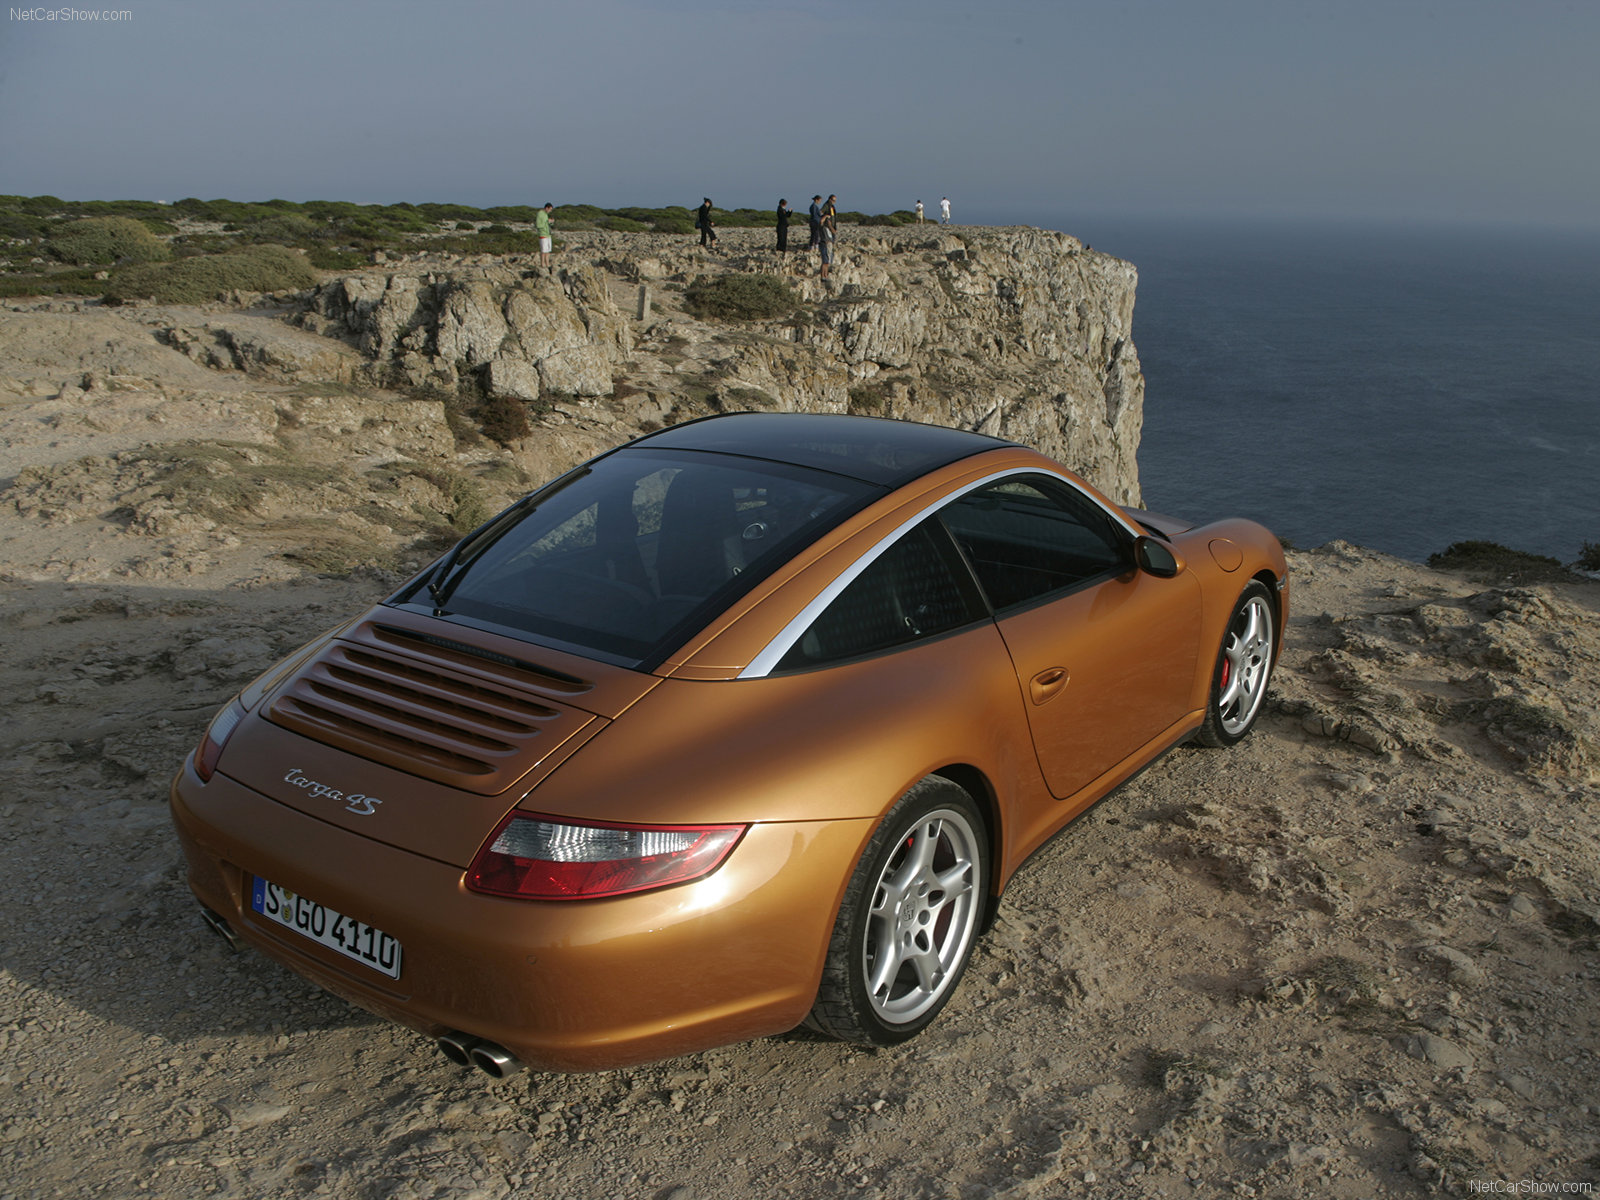 2007 Gold Porsche 911 Targa 4s Wallpapers